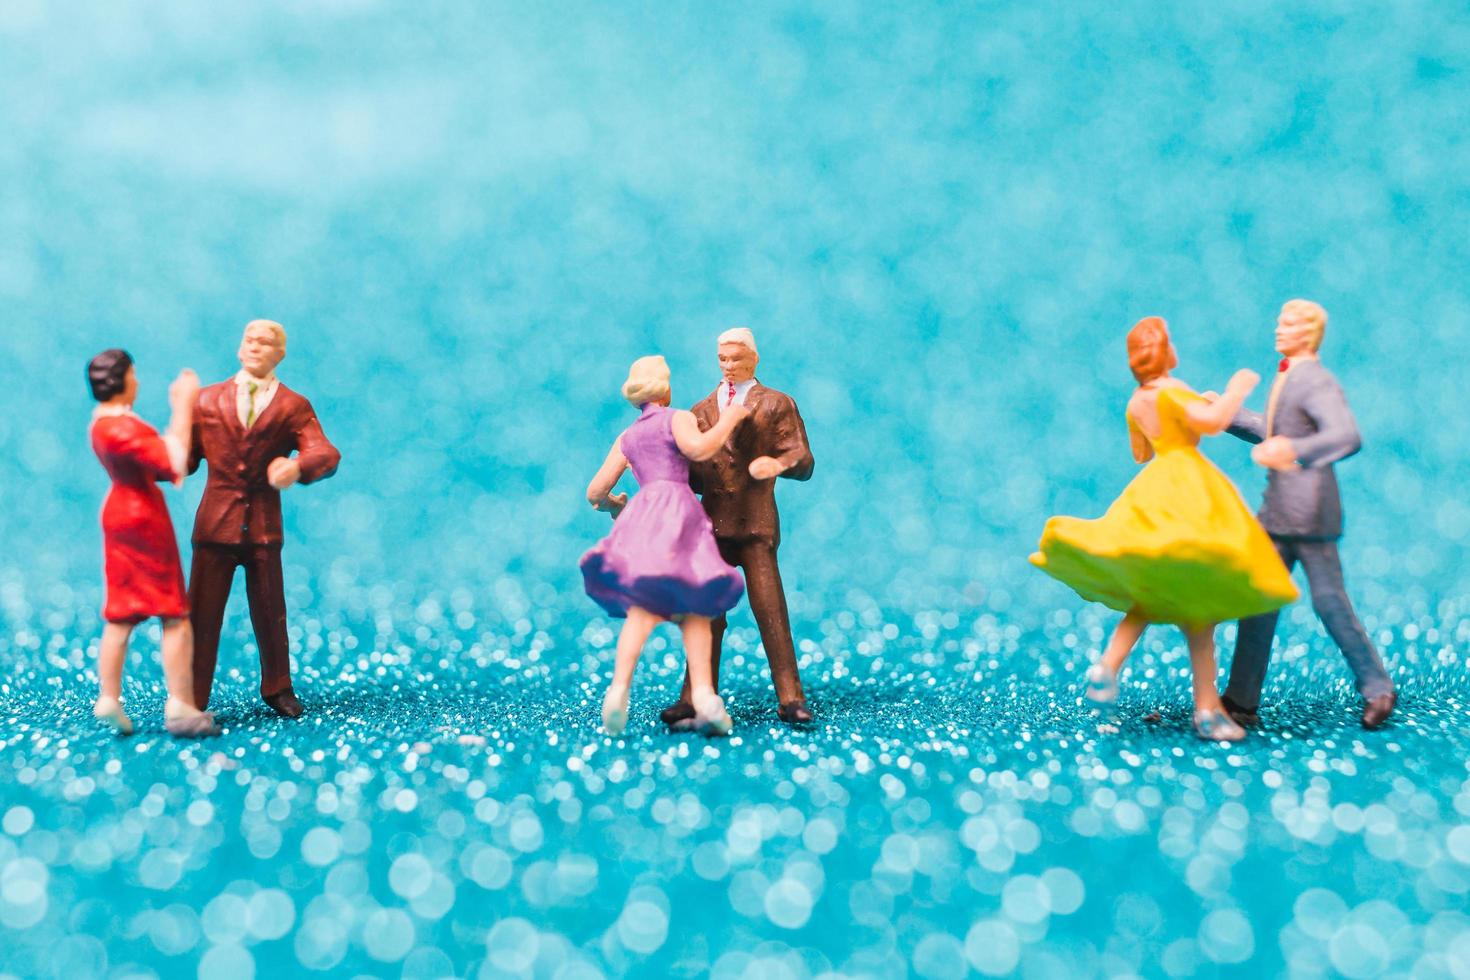 Miniature couples dancing on blue glitter background, Valentine's Day concept photo